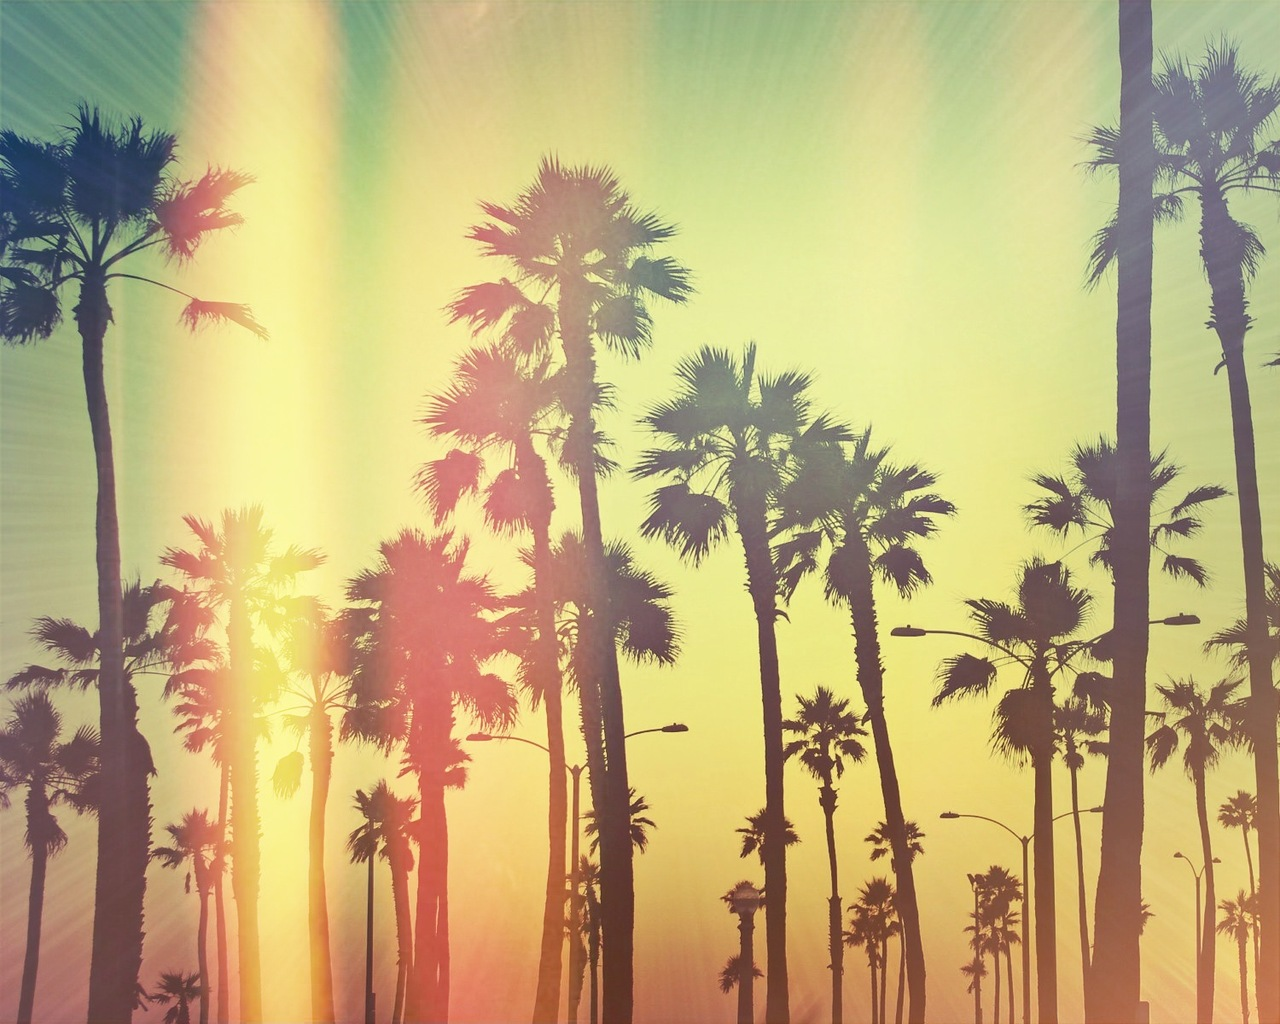 California Tumblr Wallpaper Images Pictures   Becuo 1280x1024